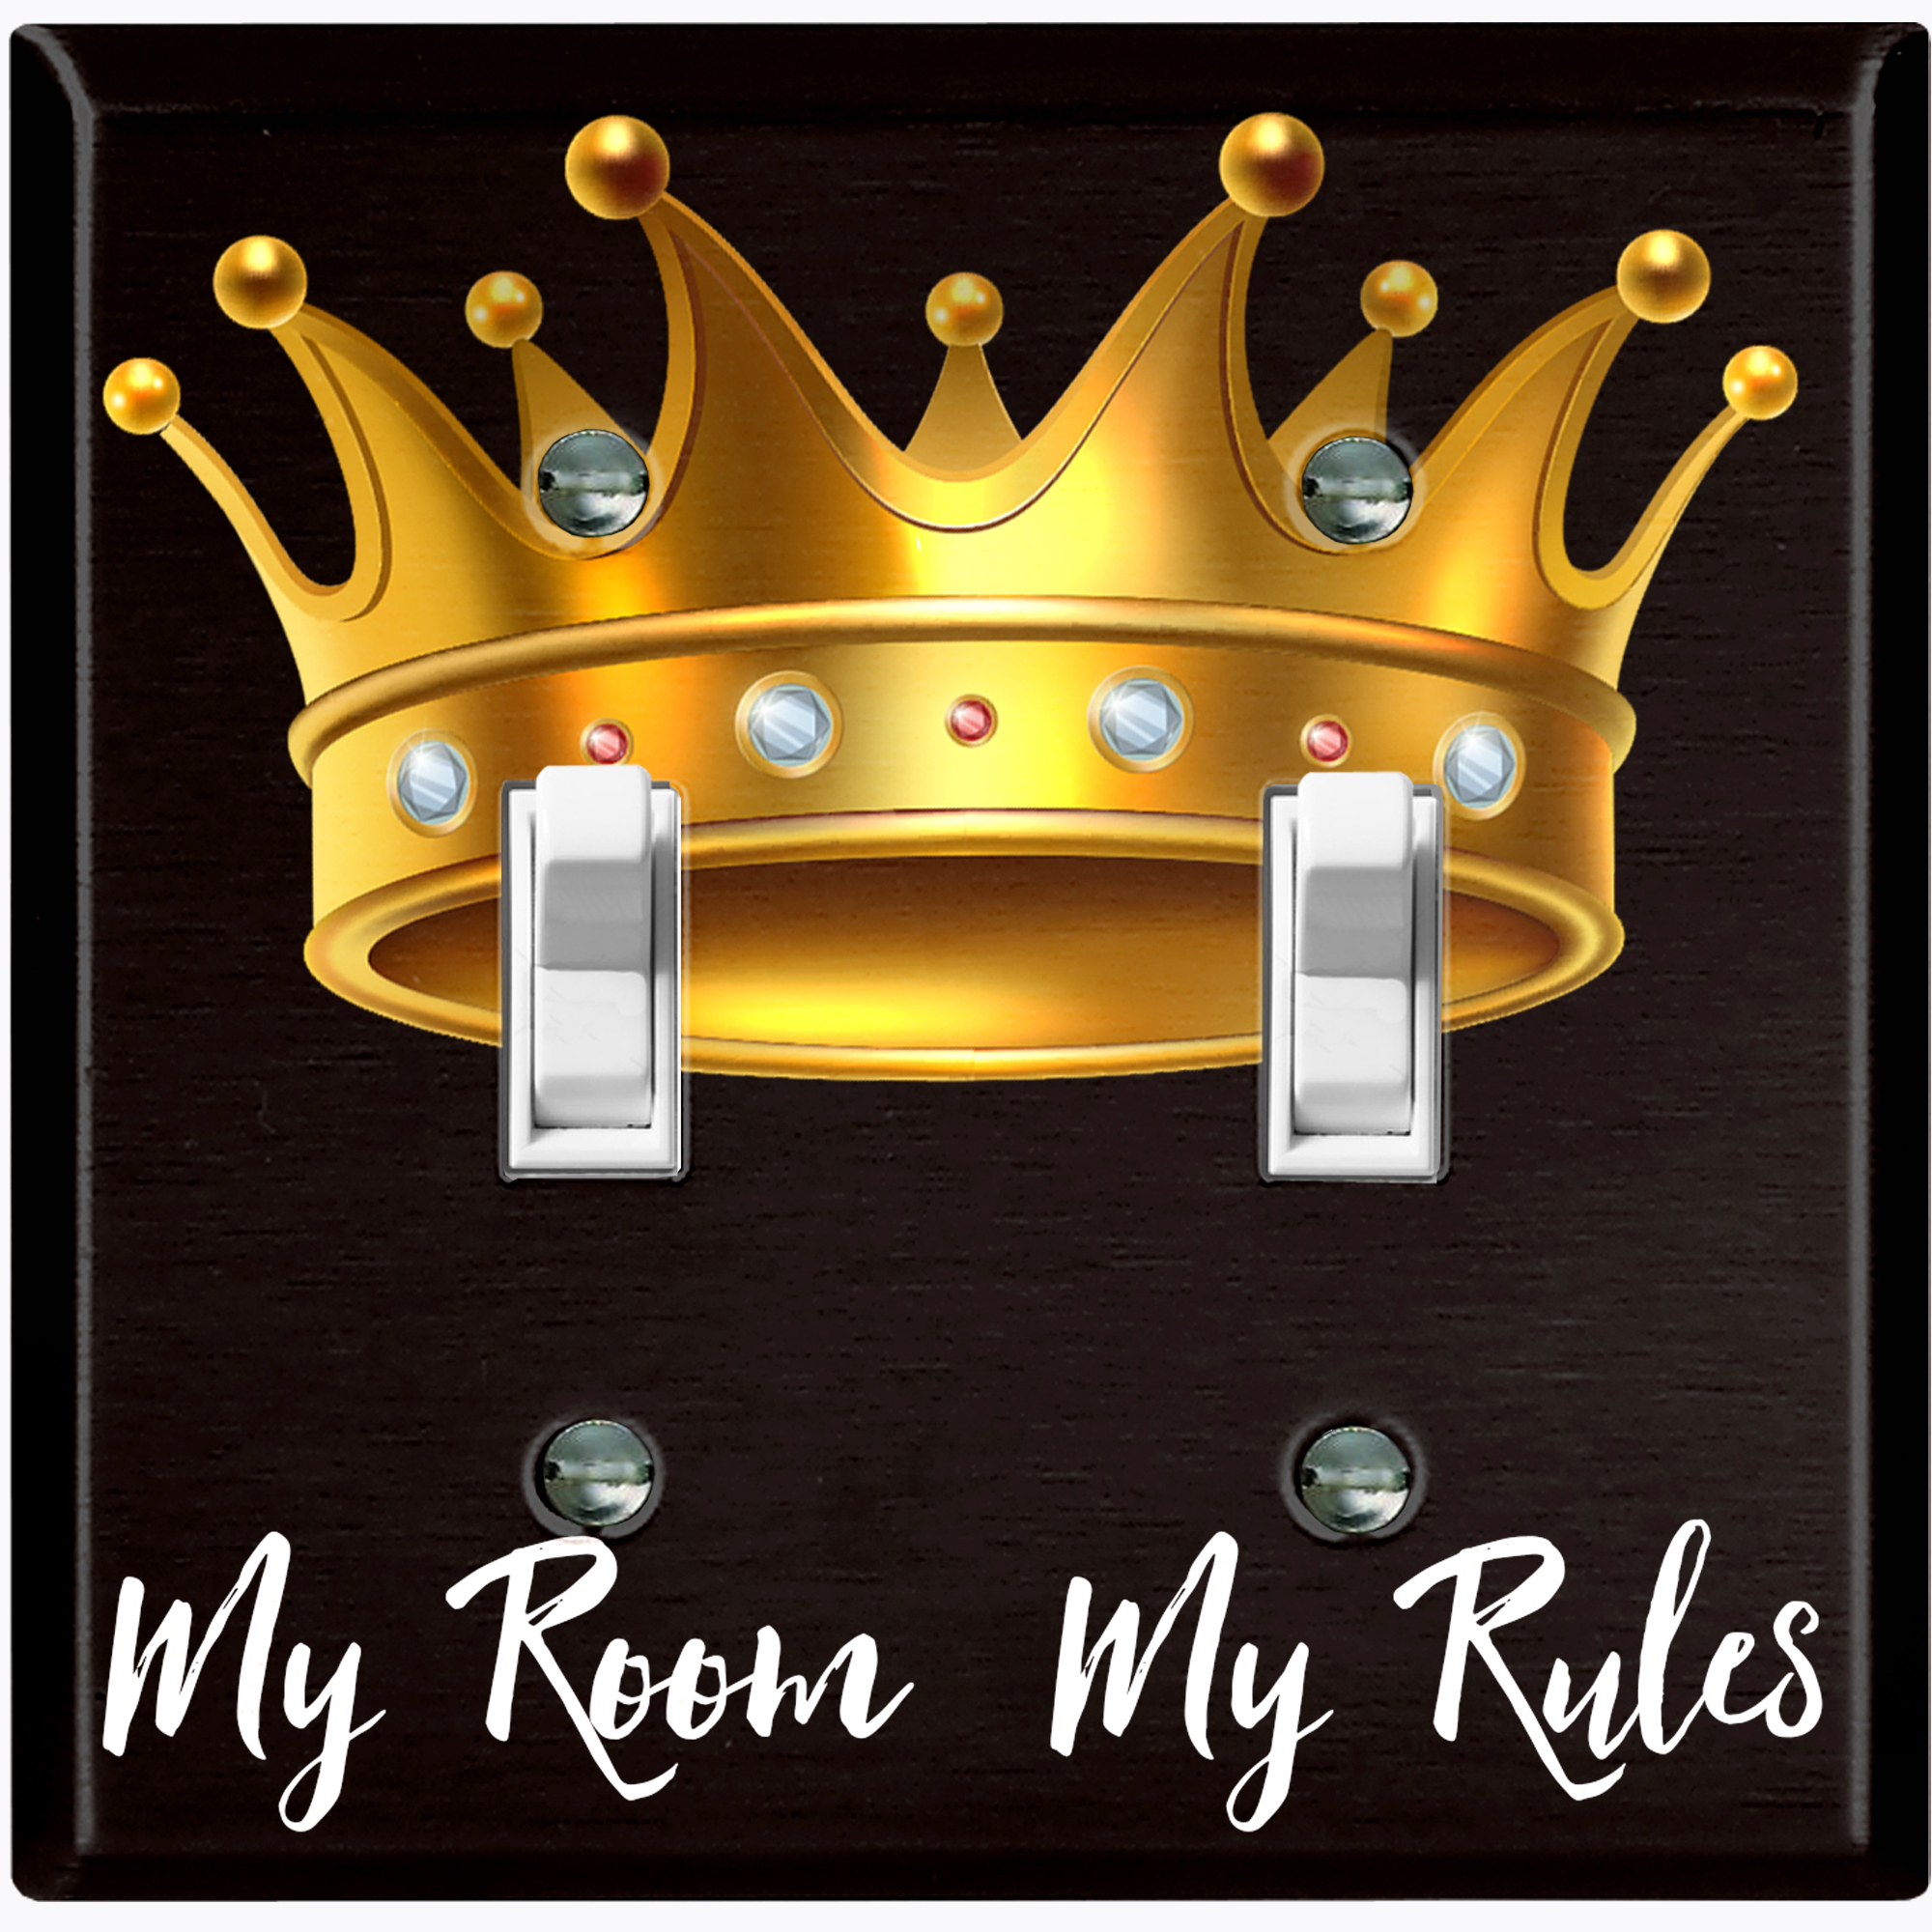 Metal Light Switch Plate Outlet Cover My Room My Rules Crown Double Toggle Walmart Com Walmart Com